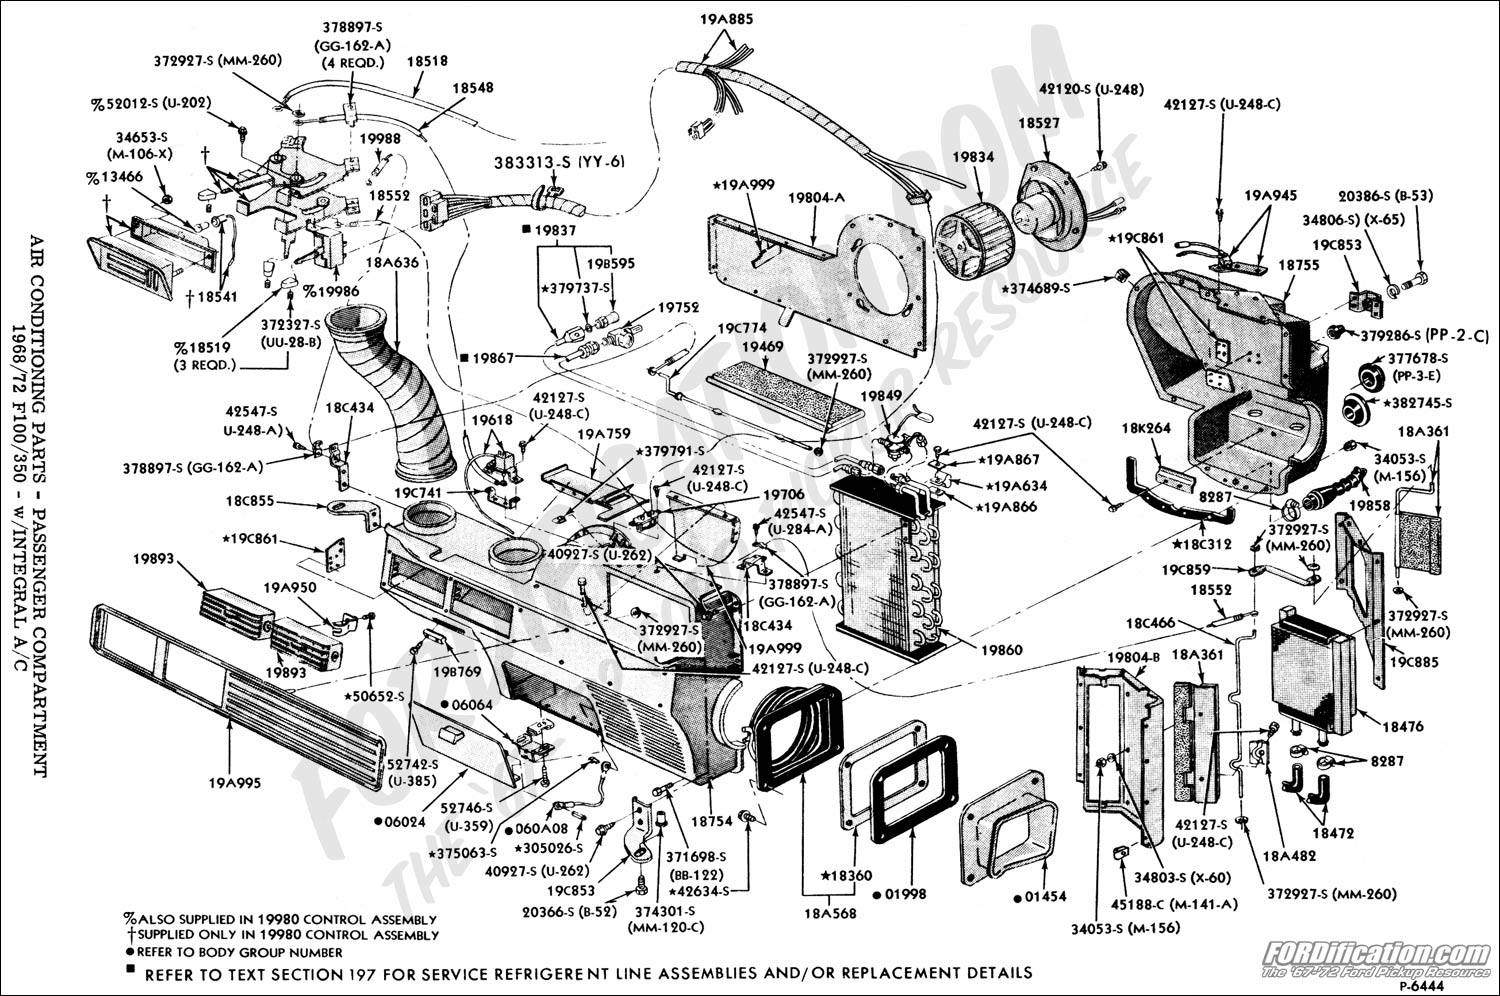 Polaris Predator 90 Wiring Diagram in addition Schematics f furthermore Schematics e besides 2014 Toyota Sequoia Wiring Diagram furthermore Ford F 150 Tailgate Parts Diagram. on ranger engine diagram